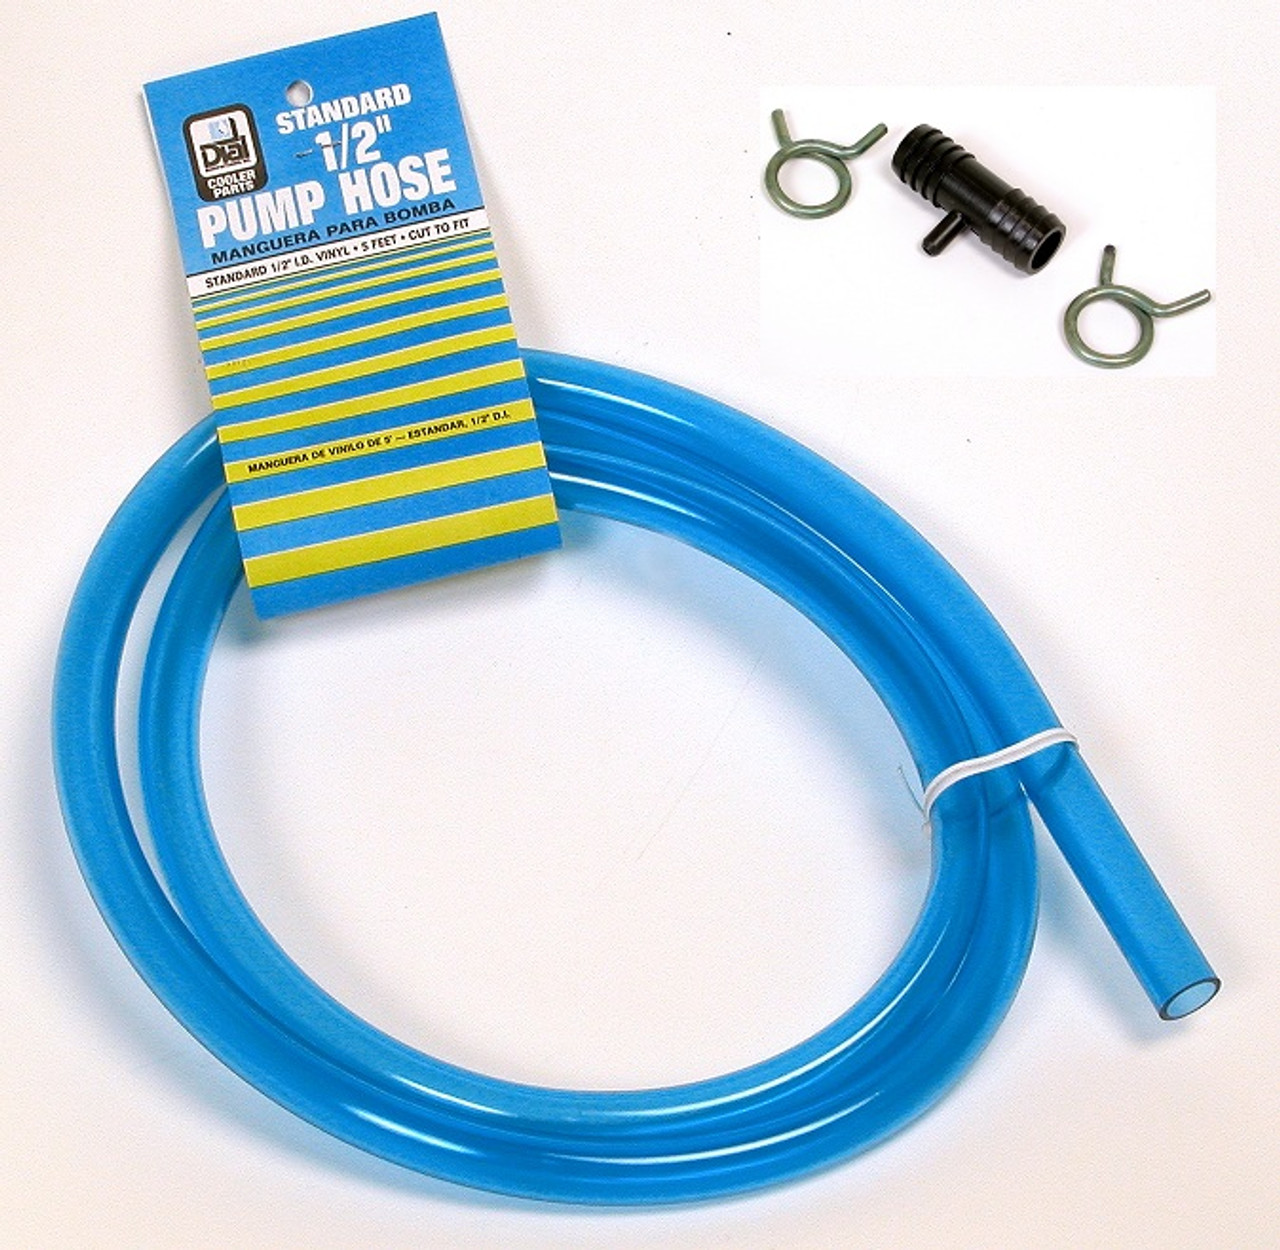 Bleed Off Tee And Hose Kit 563kit Indoor Comfort Supply